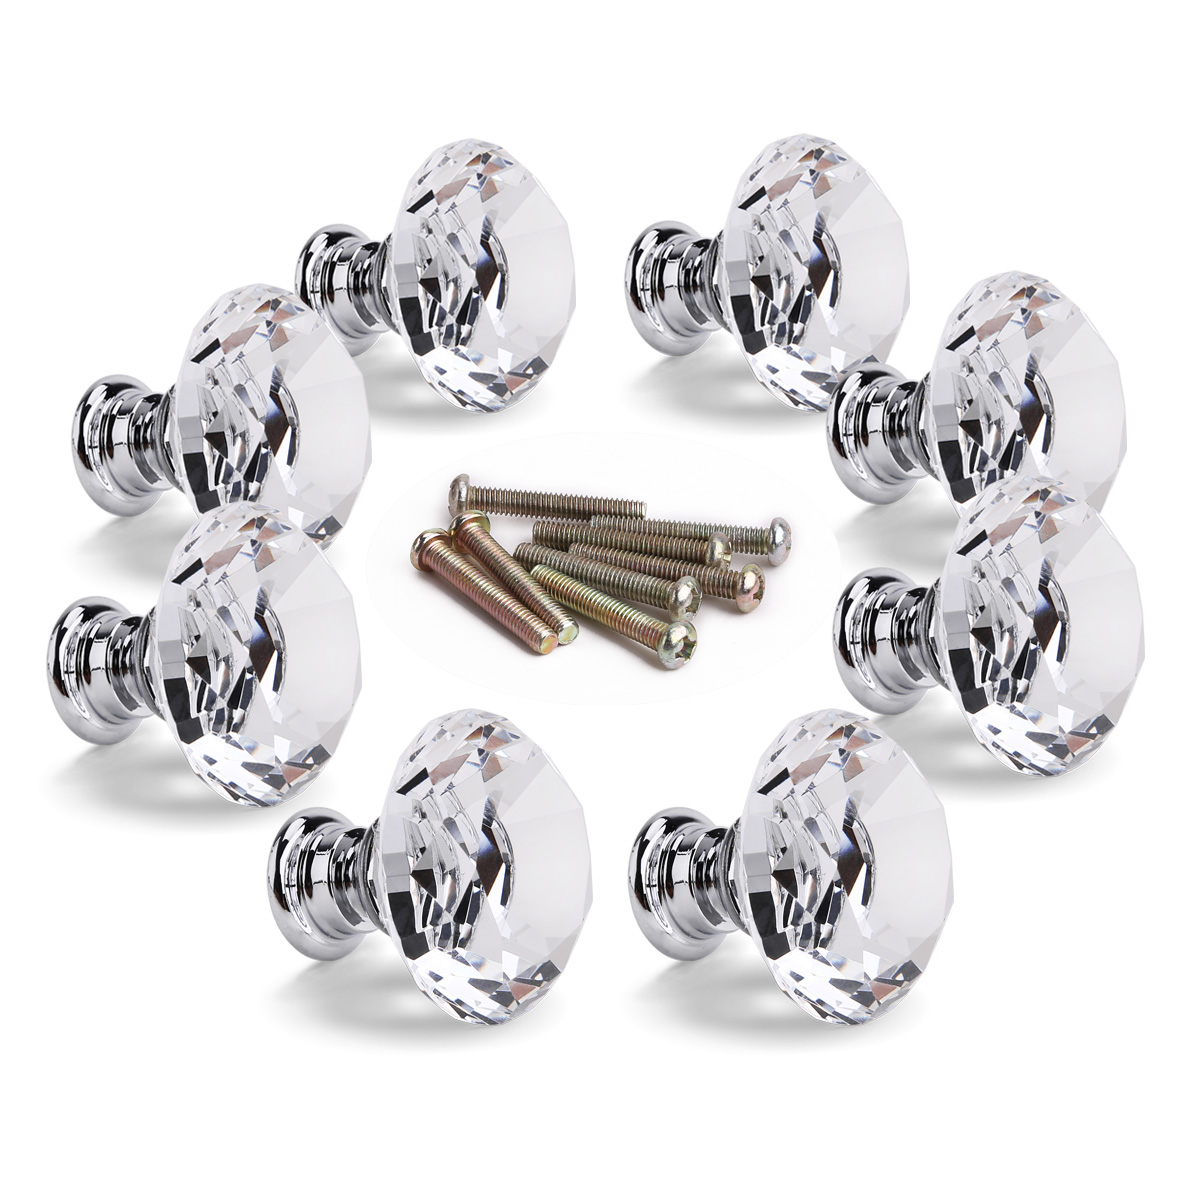 antique style glass crystal door knobs chrome drawer cabinet kitchen pull handle ebay. Black Bedroom Furniture Sets. Home Design Ideas